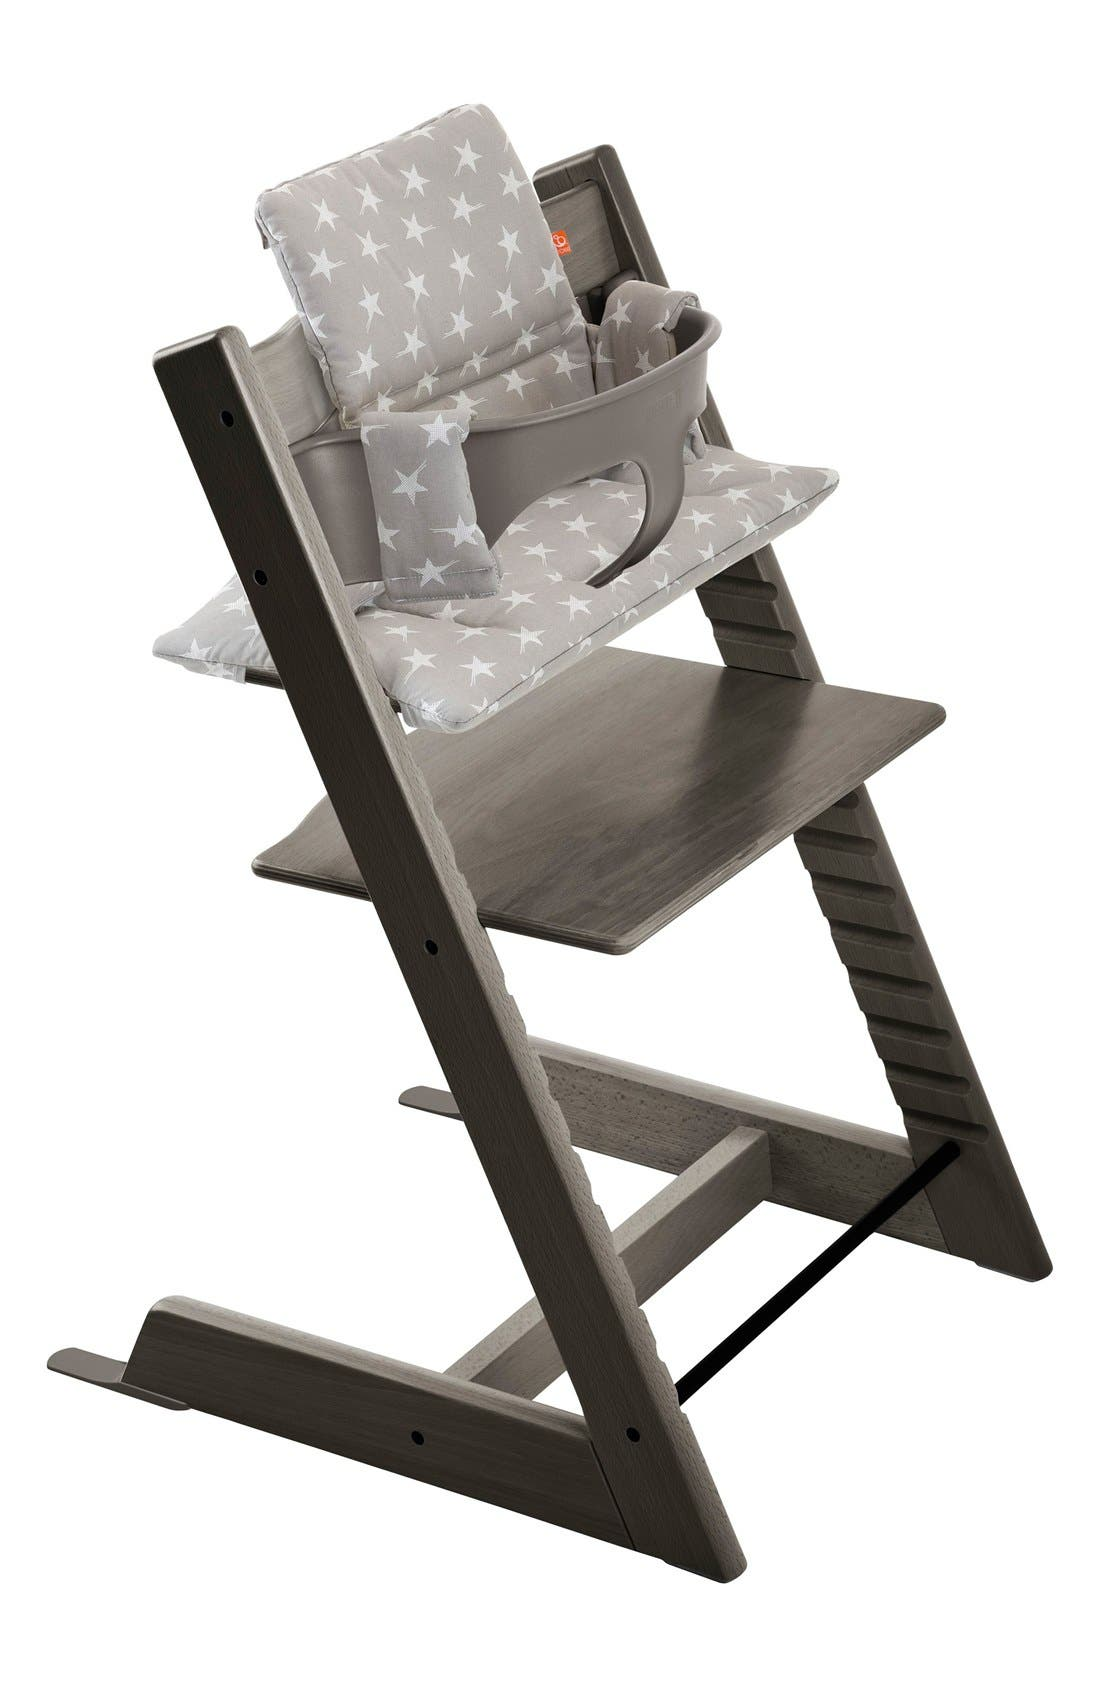 Main Image - Stokke 'Tripp Trapp®' Chair, Baby Set, Cushion & Tray Set (Nordstrom Exclusive)